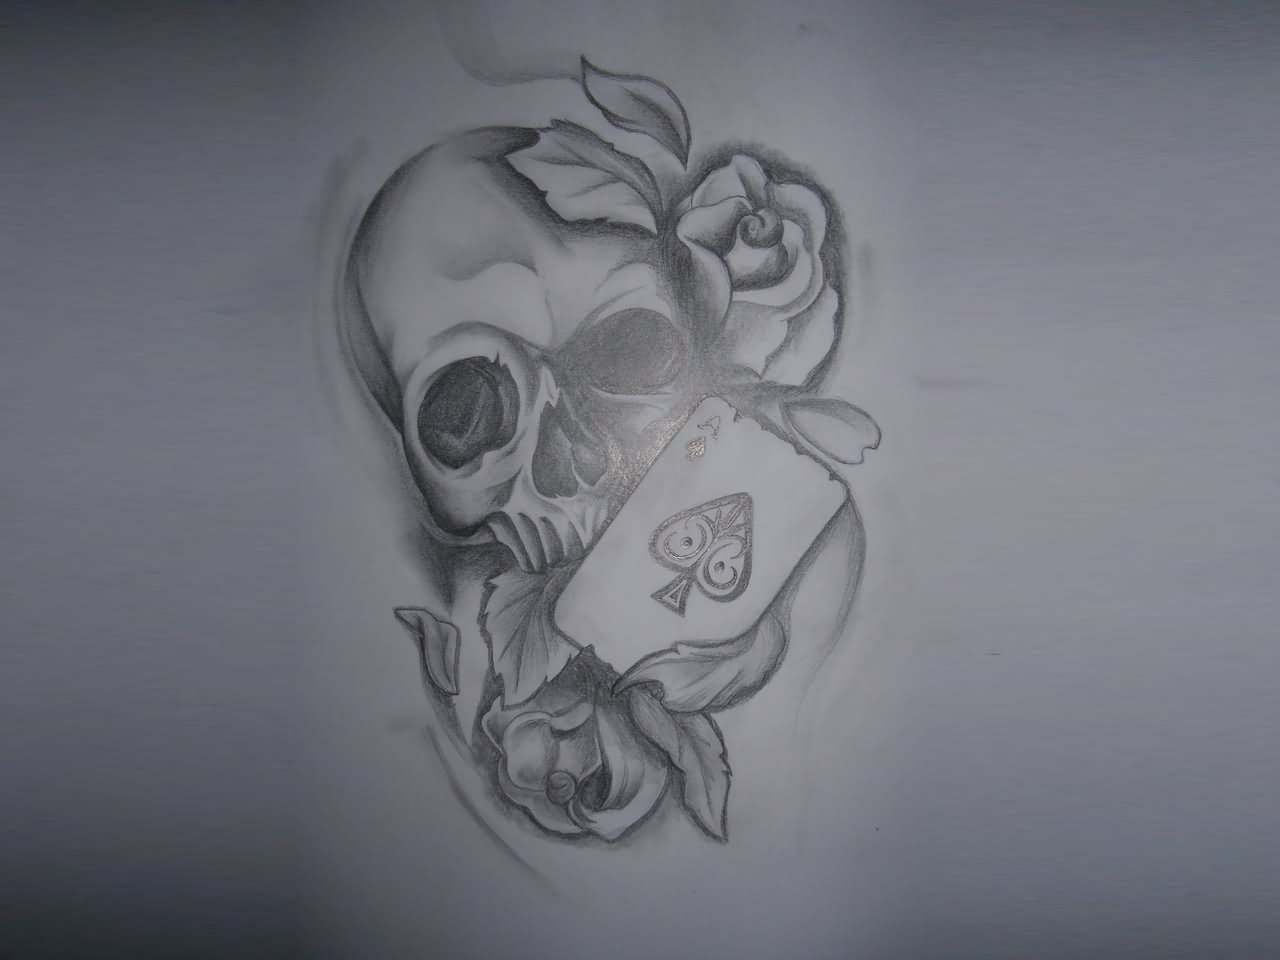 Sick Rose The Faces